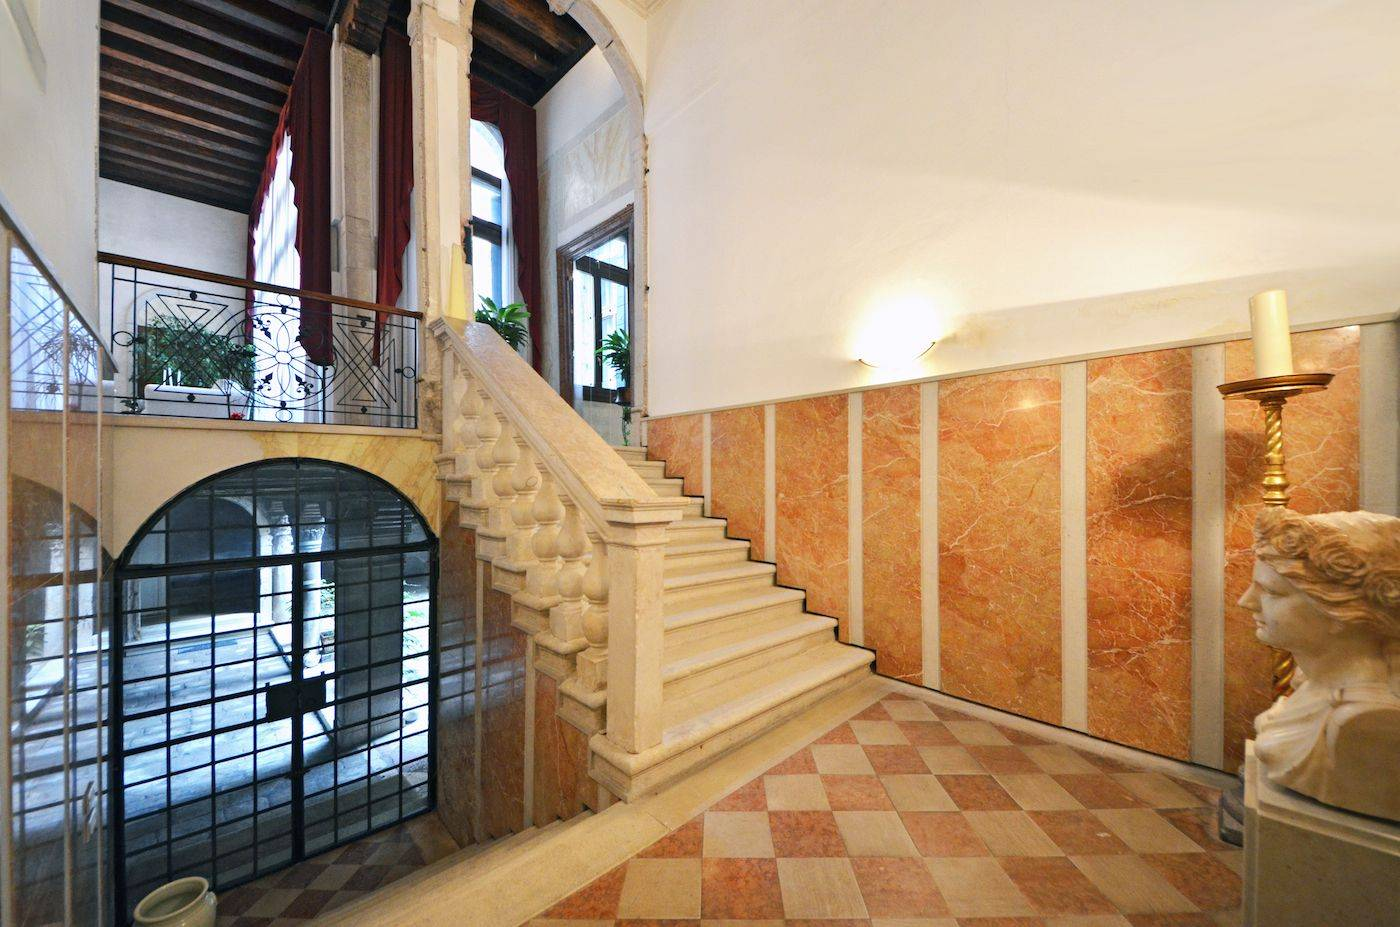 prestigious entrance and stairway to the first noble floor